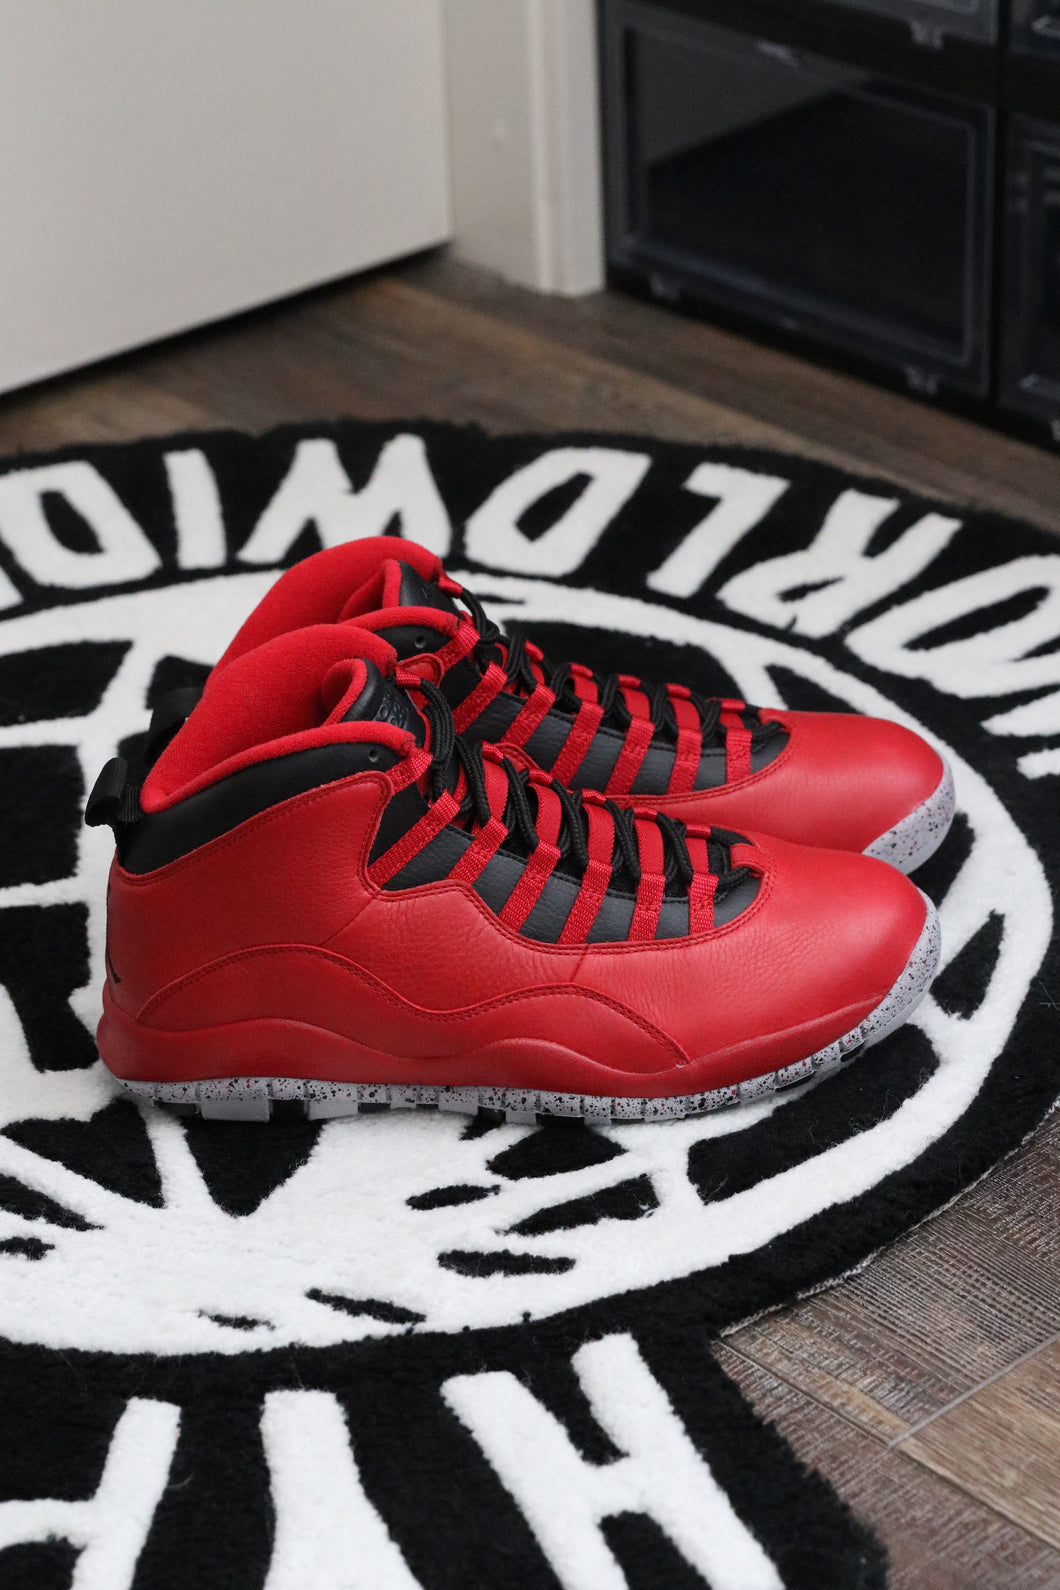 Jordan 10 Retro Bulls Over Broadway | New | Size 10.5